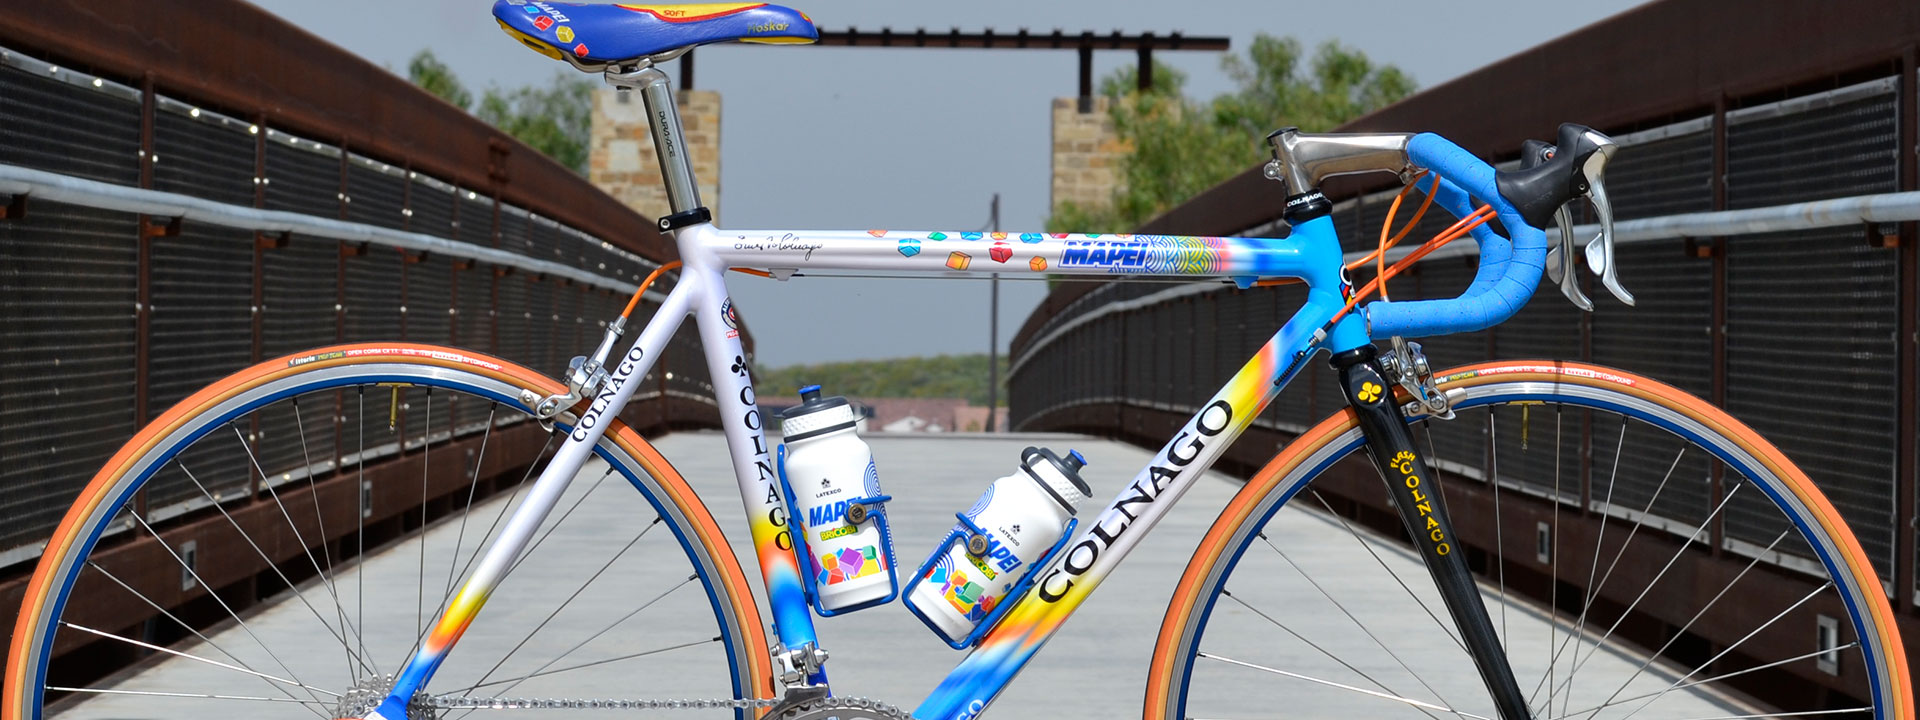 Colnago Dream Plus Mapei Shimano Dura Ace 7700 Complete Bike at twohubs.com